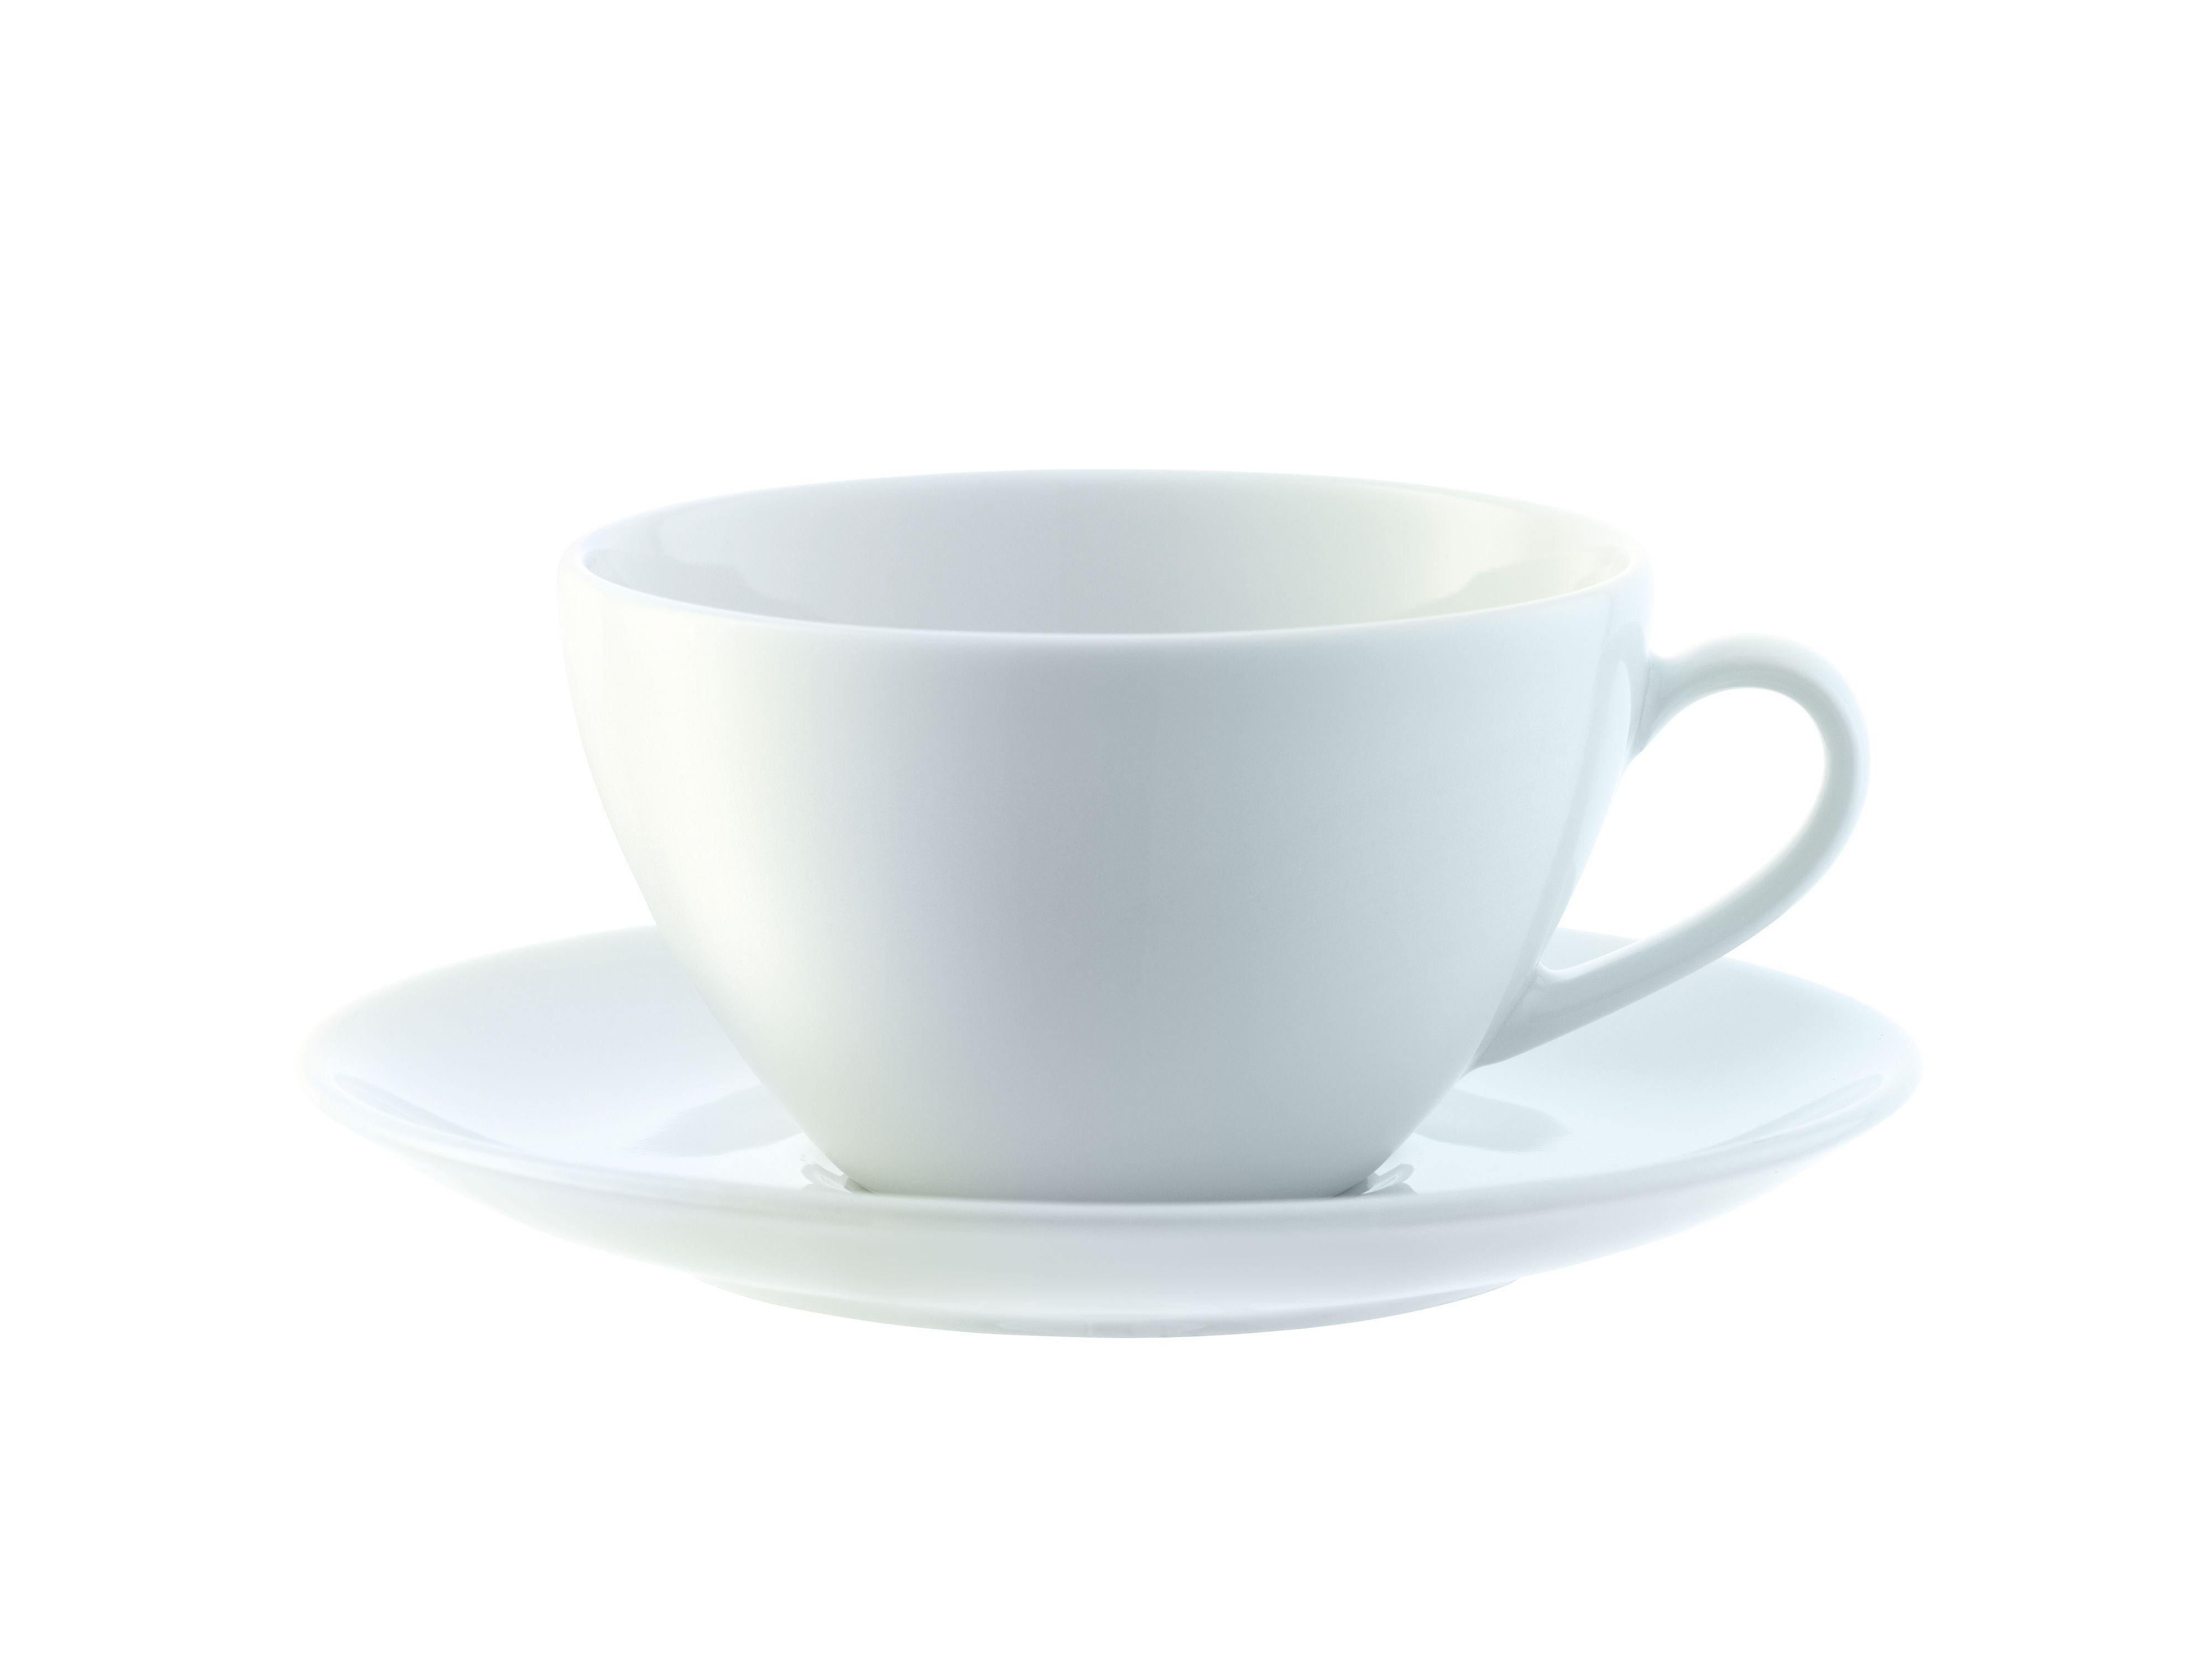 Dine Tea / Coffee Cup & Saucer Curved, set of 4